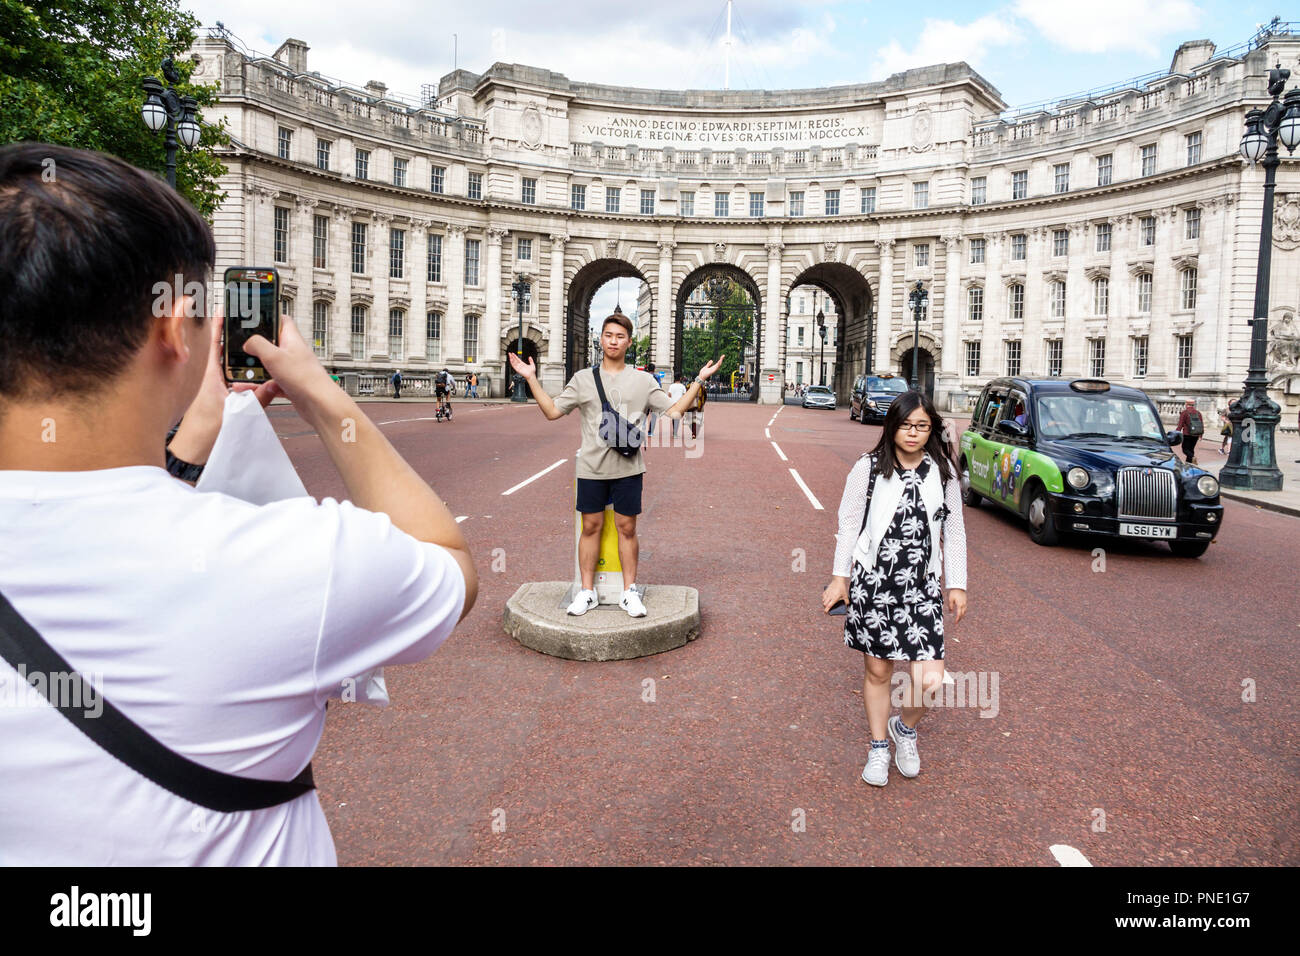 London England Great Britain United Kingdom St. Saint James's The Mall Admiralty Arch landmark historic building archway ceremonial road gateway Aston - Stock Image